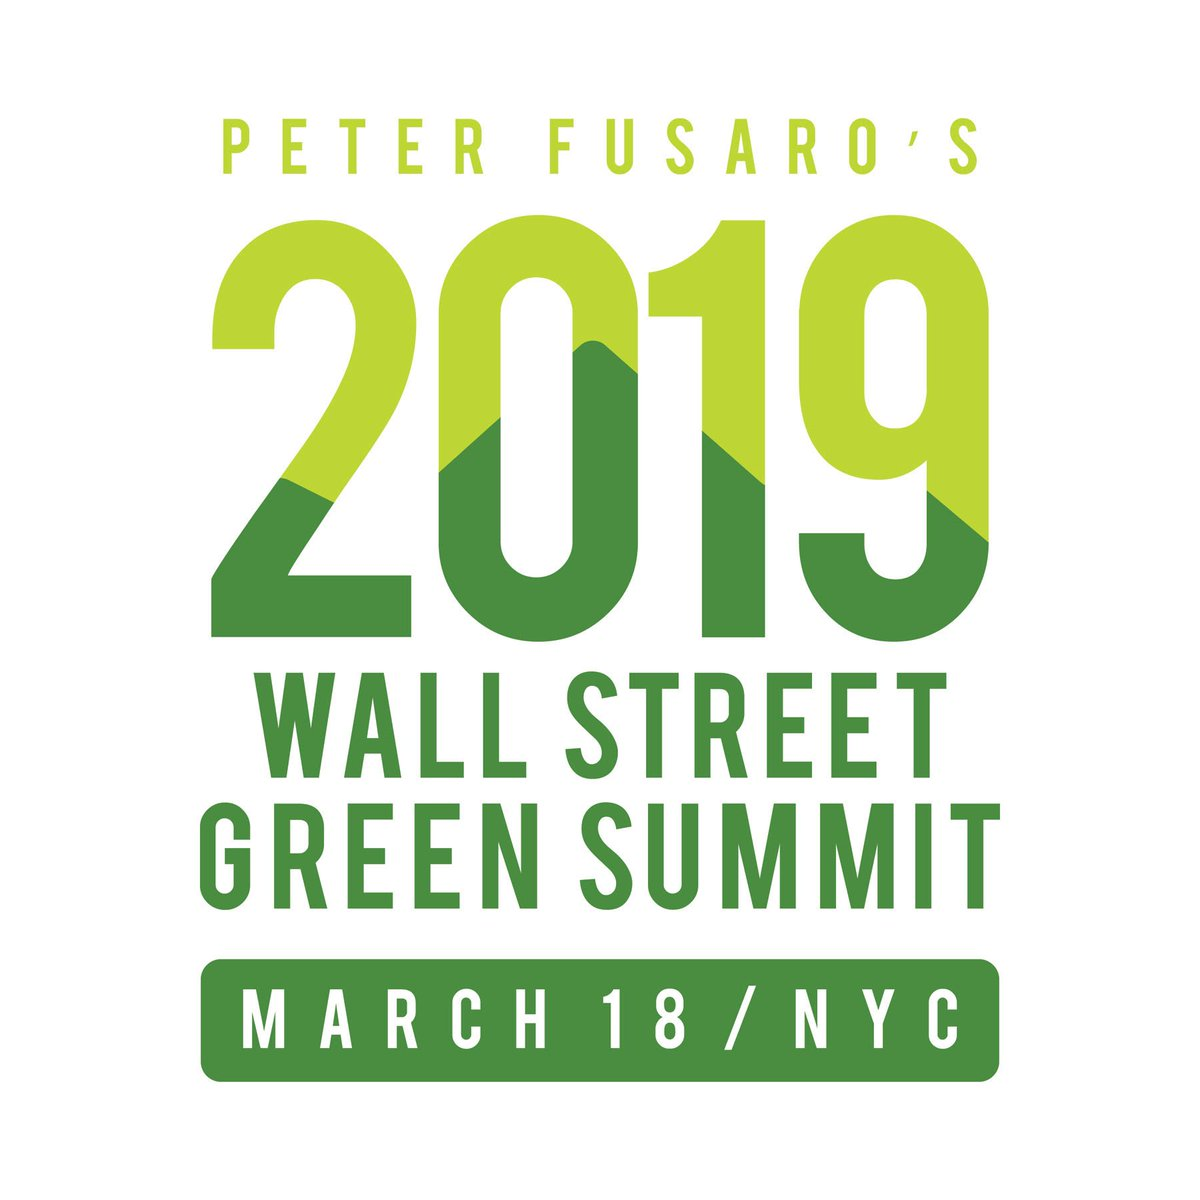 "test Twitter Media - 11 days until the 2019 Wall Street Green Summit XVIII - the ""one-stop shop"" to get up to speed on the latest developments in Green Innovation & Finance - Register Now! @fusarotweets #wallstreetgreensummit #greennewdeal #sustainablefinance #impactinvesting https://t.co/NVKuVHZIsw https://t.co/j1LX9QcRpq"